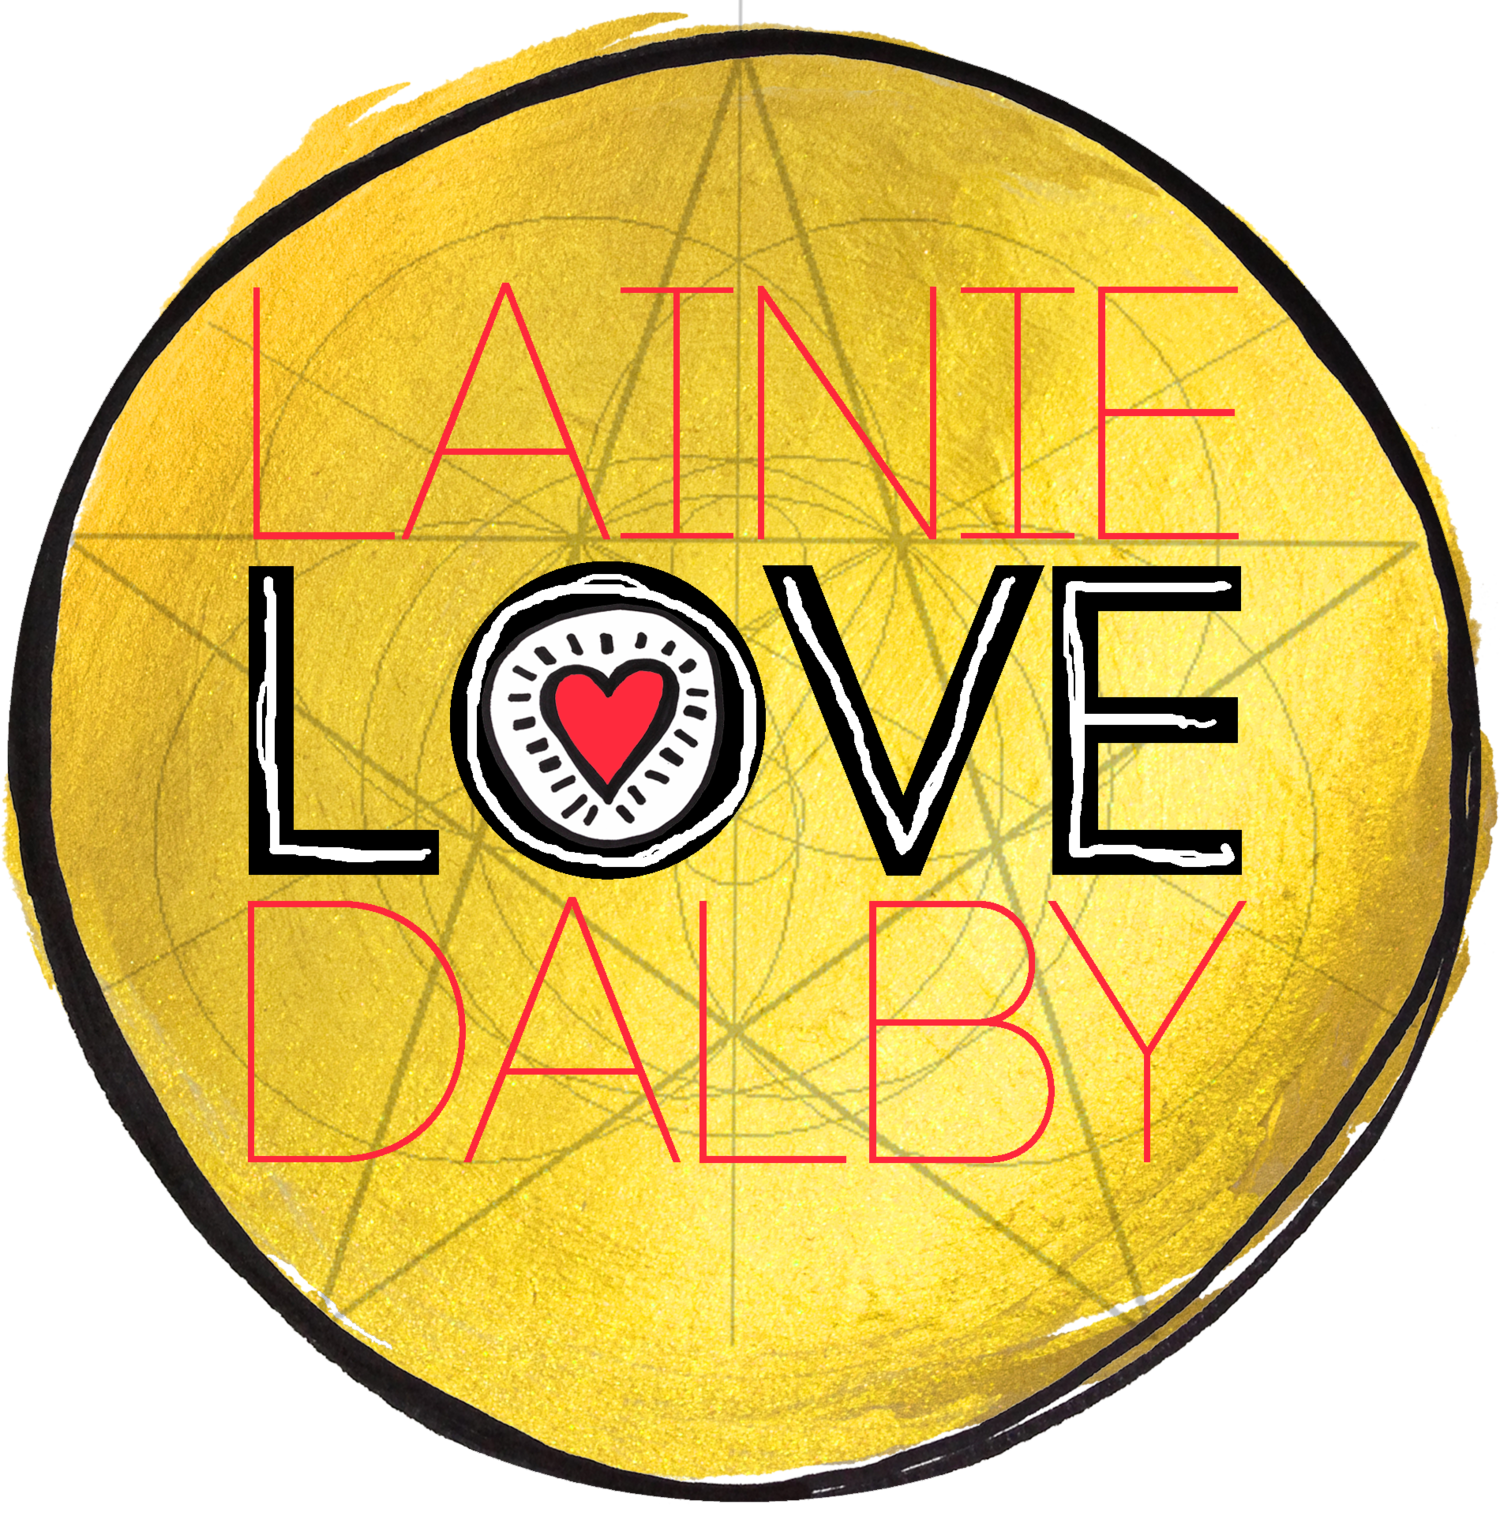 Embodied Spiritual & Leadership Development with Lainie Love Dalby